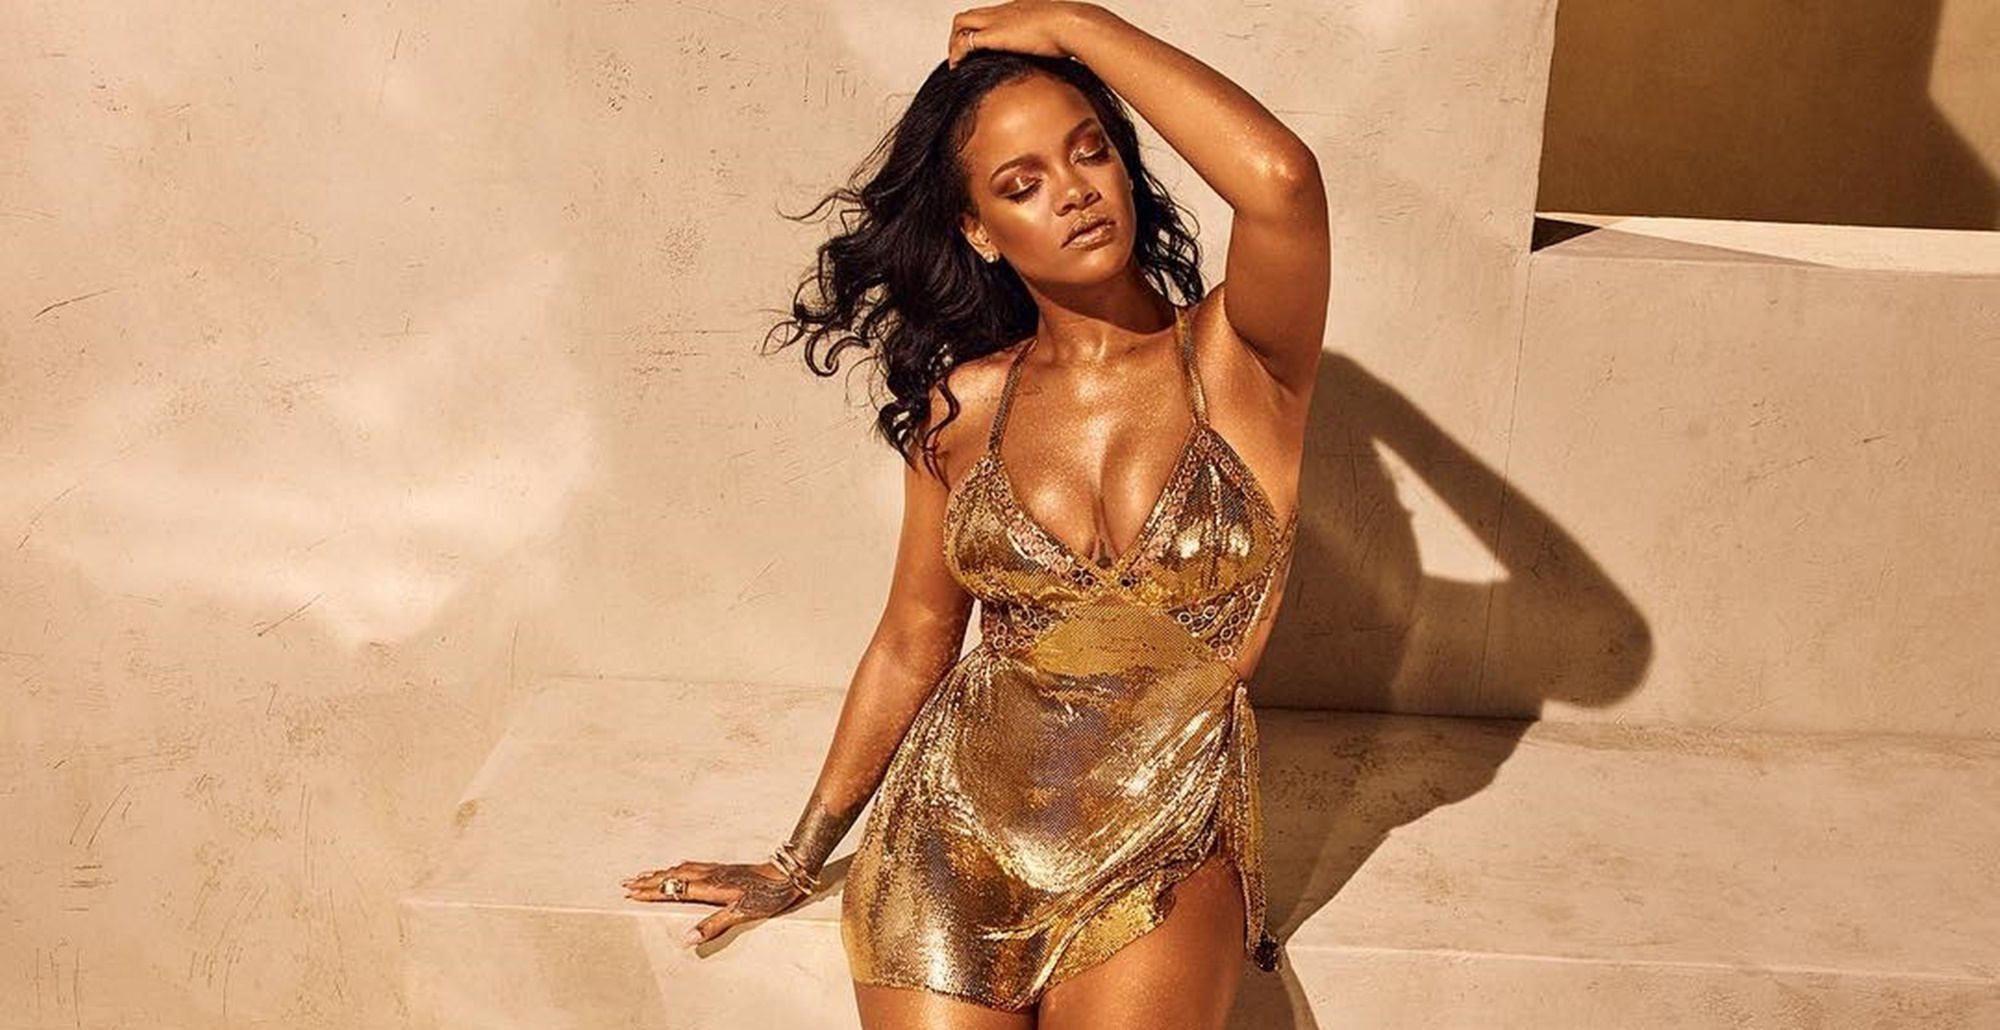 """""""chris-brown-is-going-crazy-over-rihannas-latest-photo-where-she-is-dripping-gold-should-hassan-jameel-be-worried"""""""